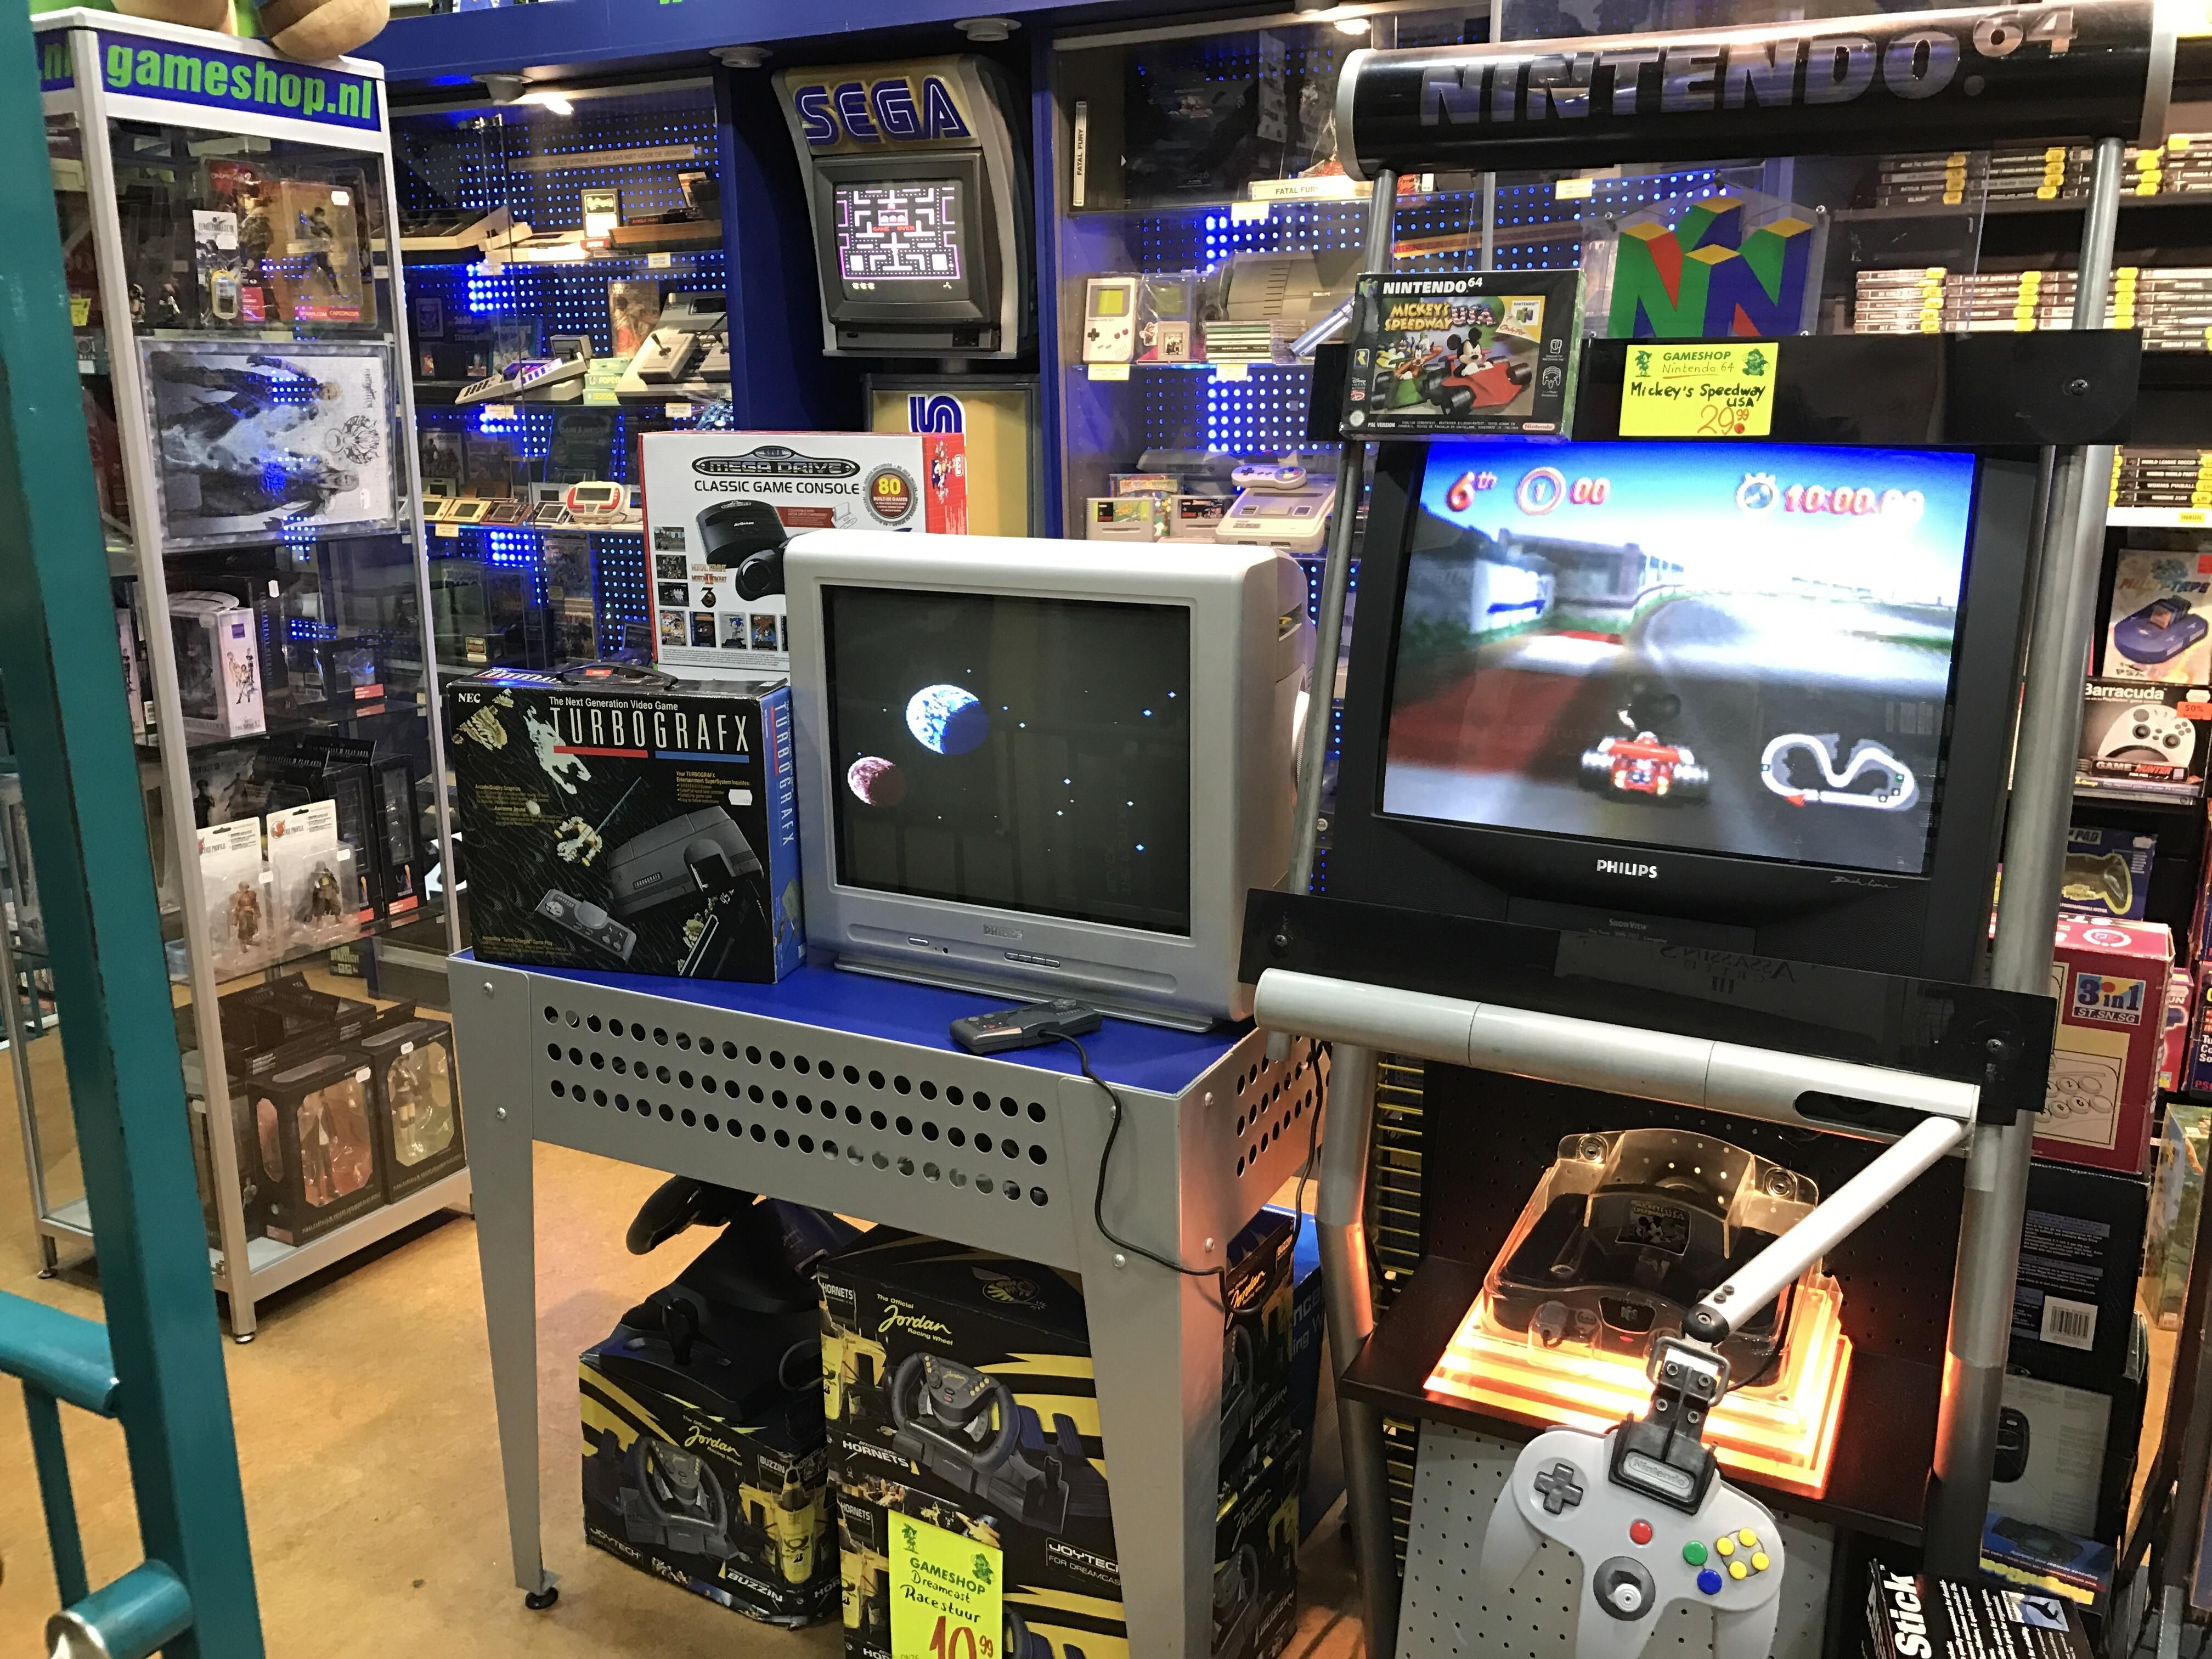 Private retro game collection of a video game shop owner